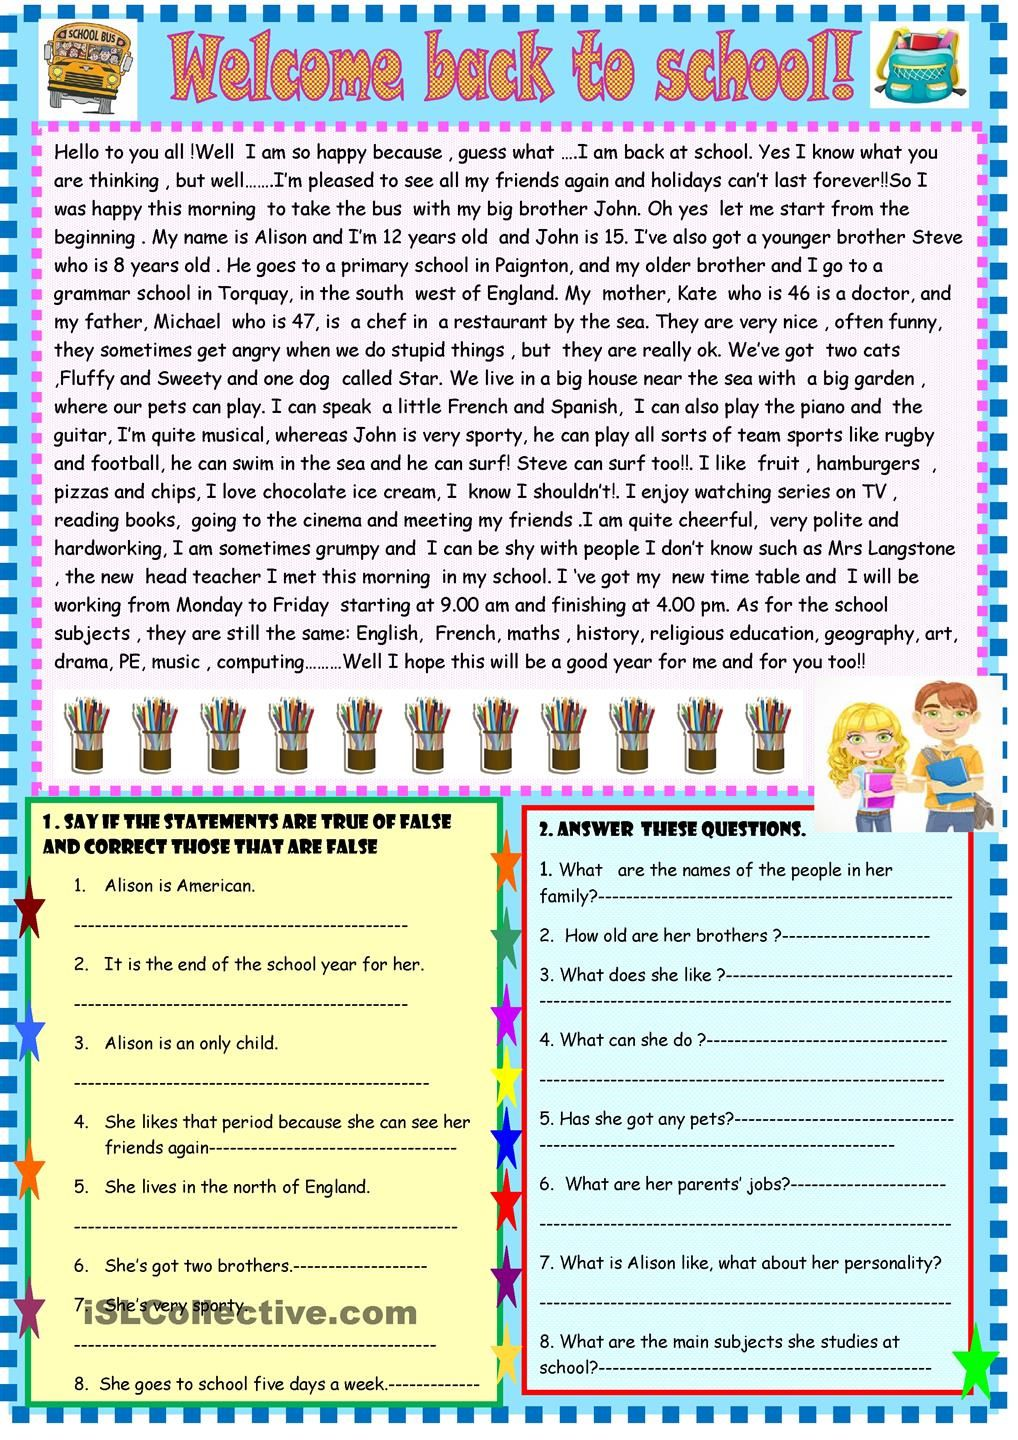 welcome back to school: reading | ESL worksheets of the day ...